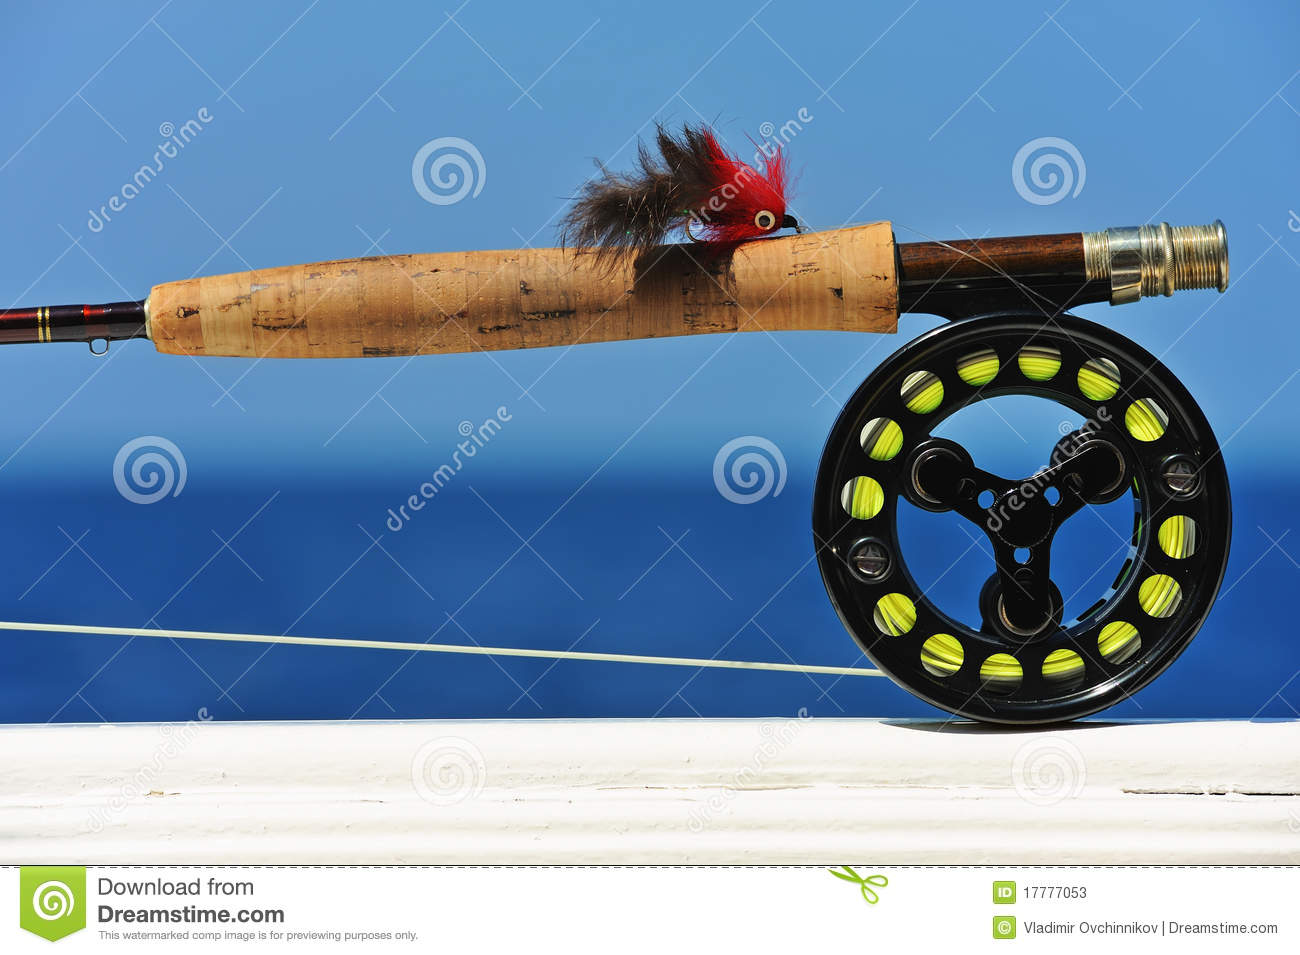 Saltwater fly fishing tackle stock photos image 17777053 for Saltwater fishing supplies